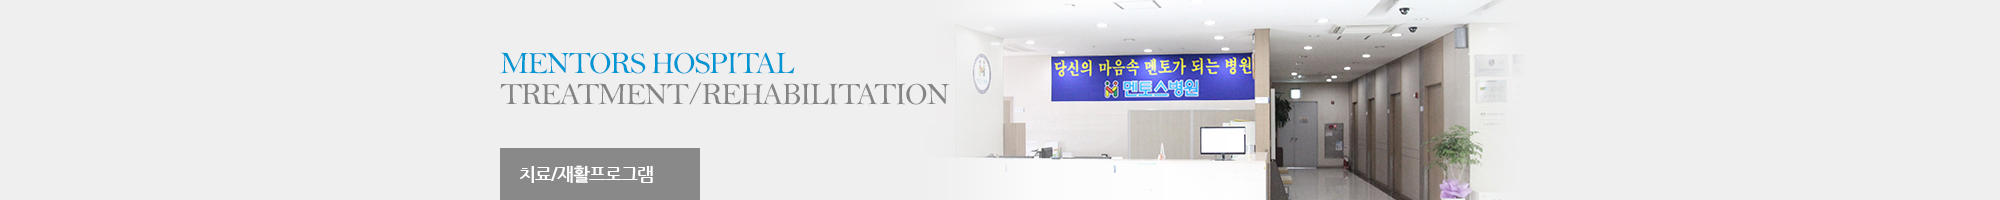 MENTORS HGOSPITAL TREATMENT/REHABILITATION 치료/재활프로그램